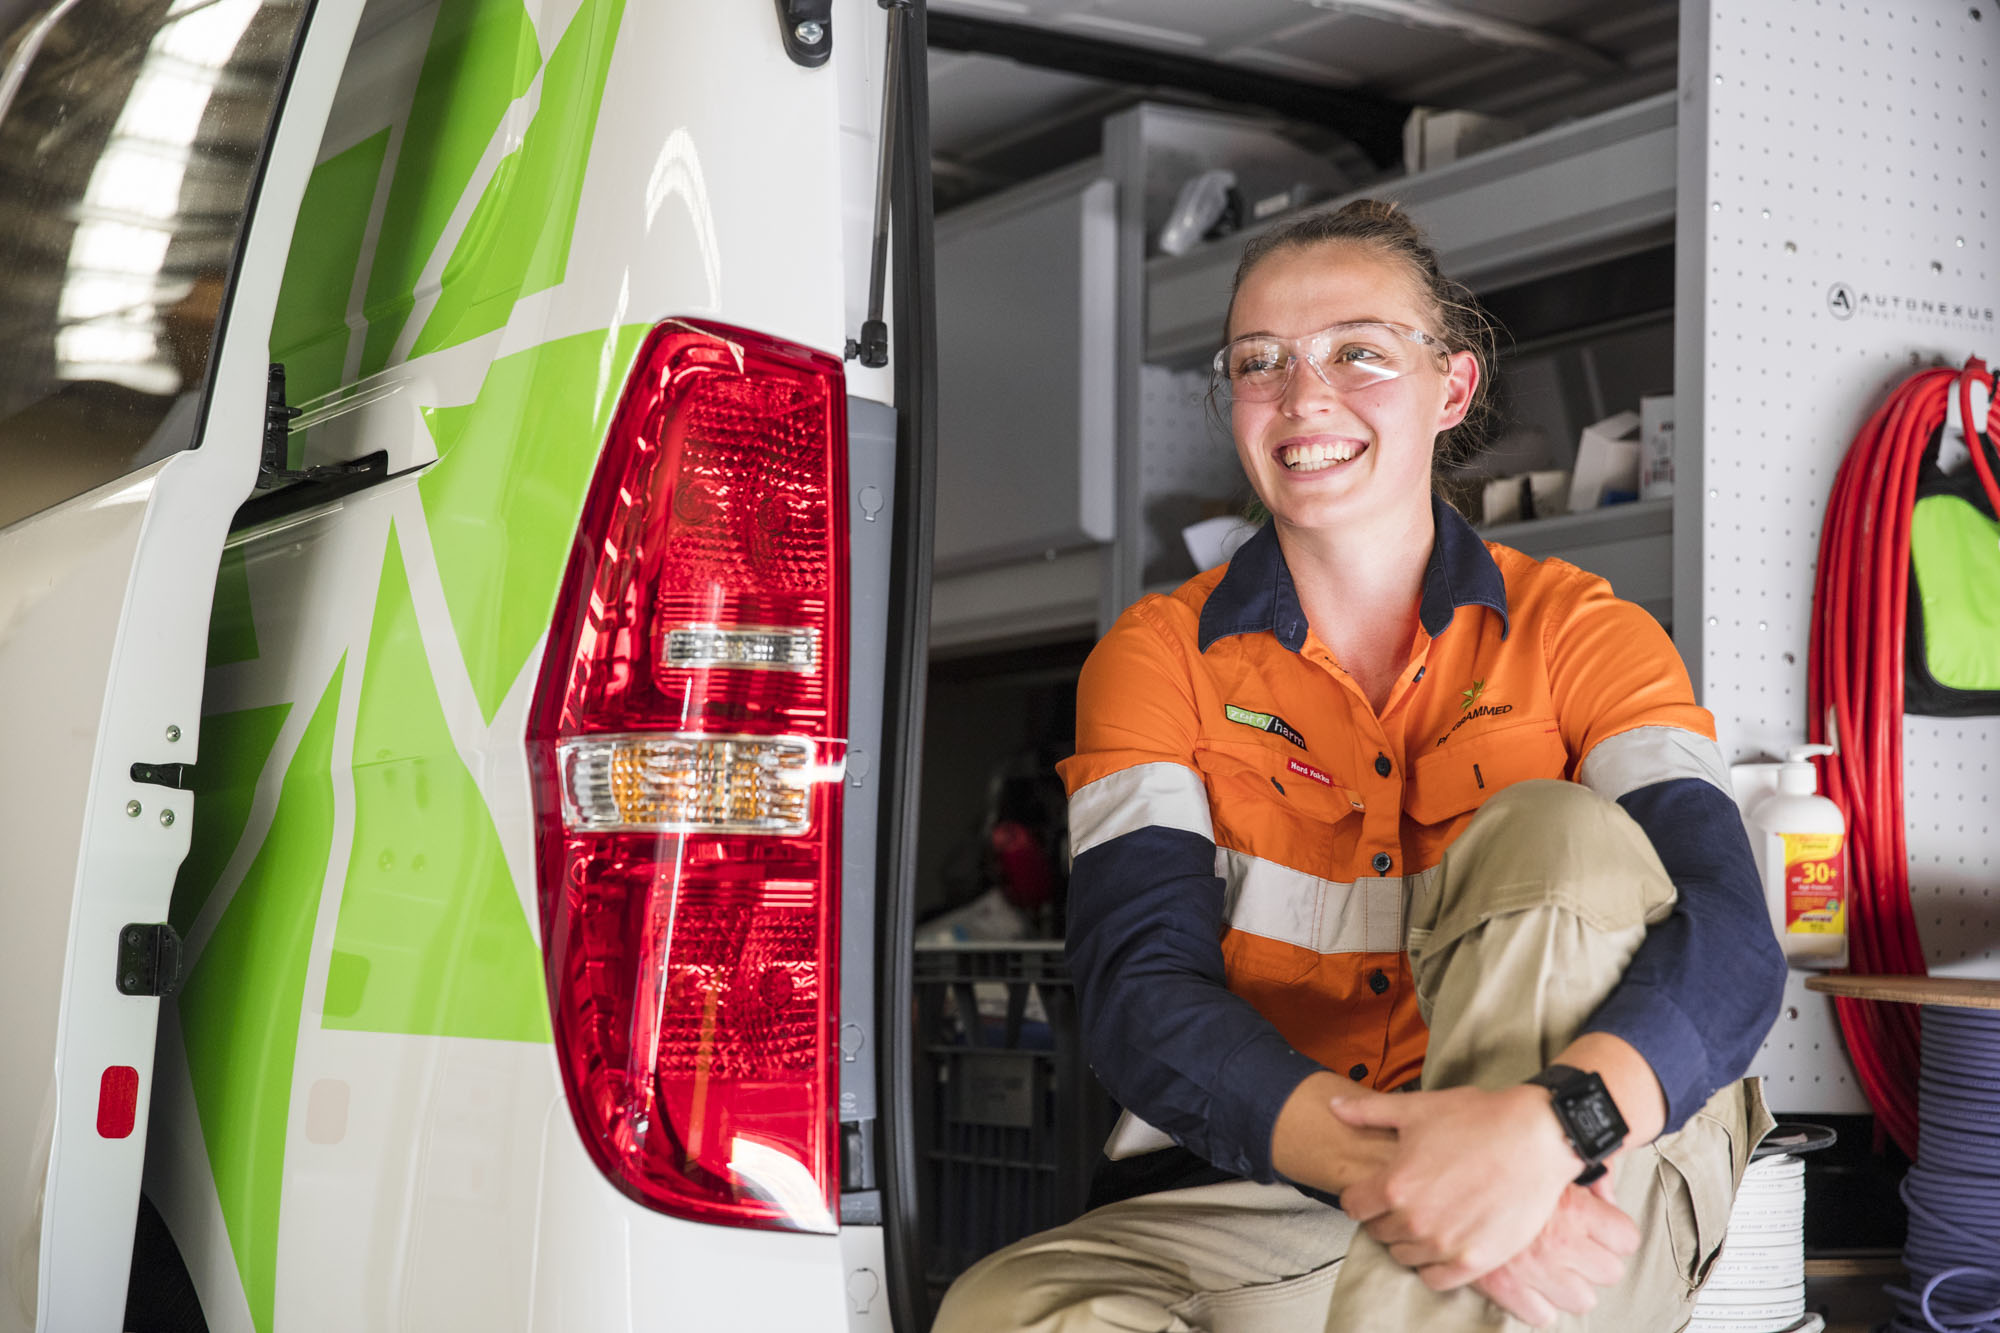 Programmed female tradie in van